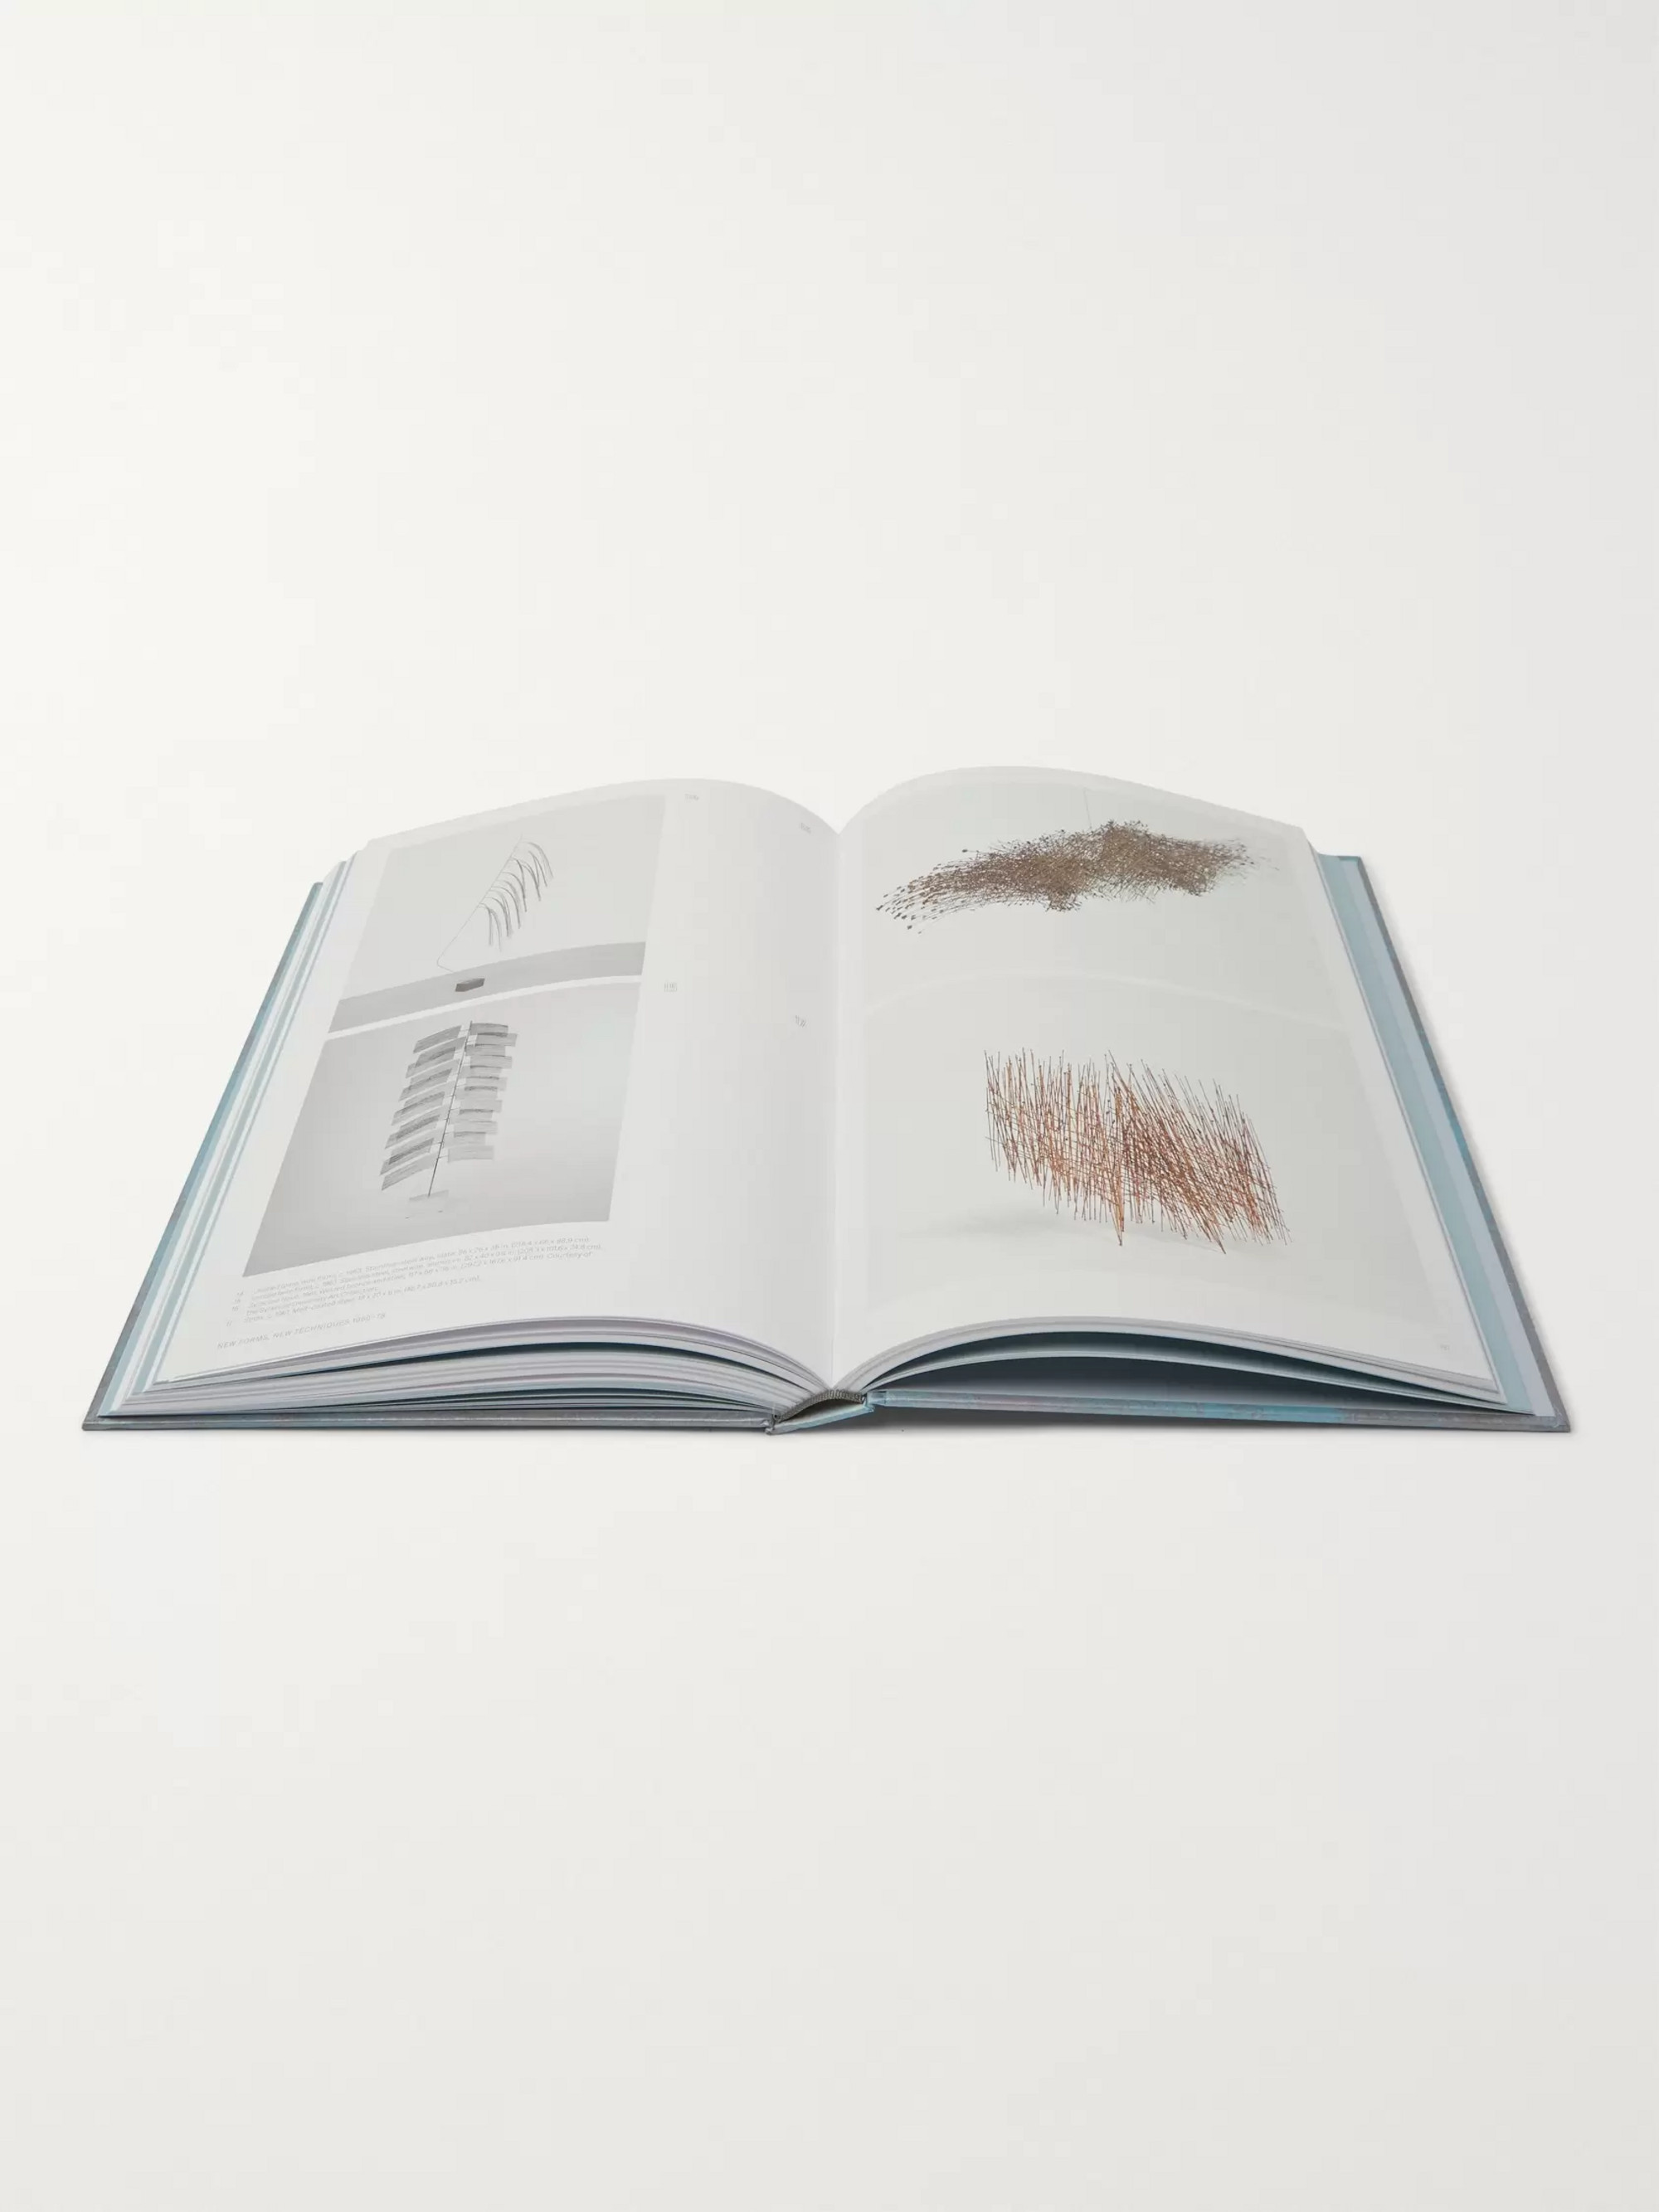 Phaidon Bertoia: The Metalworker Hardcover Book